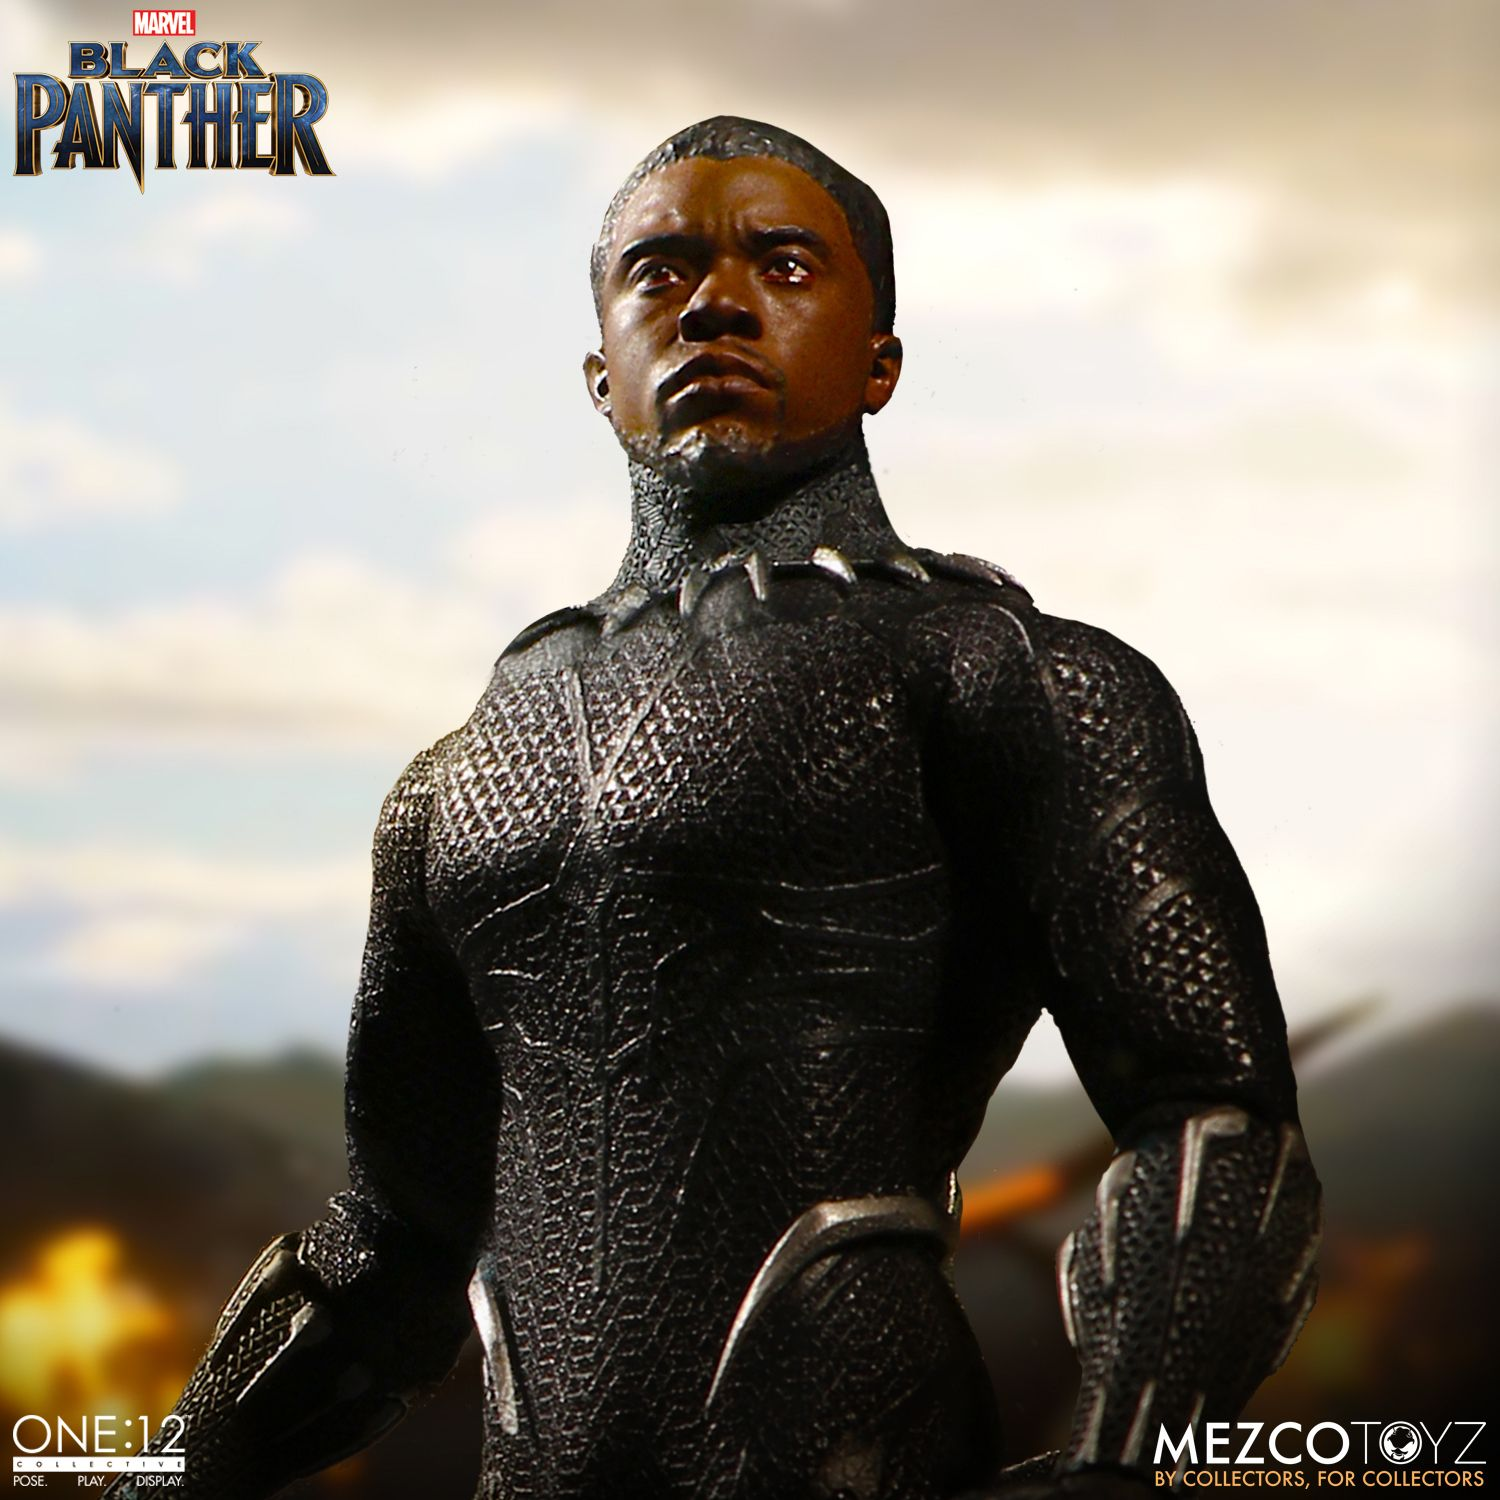 black panther mezco one 12 figure 9